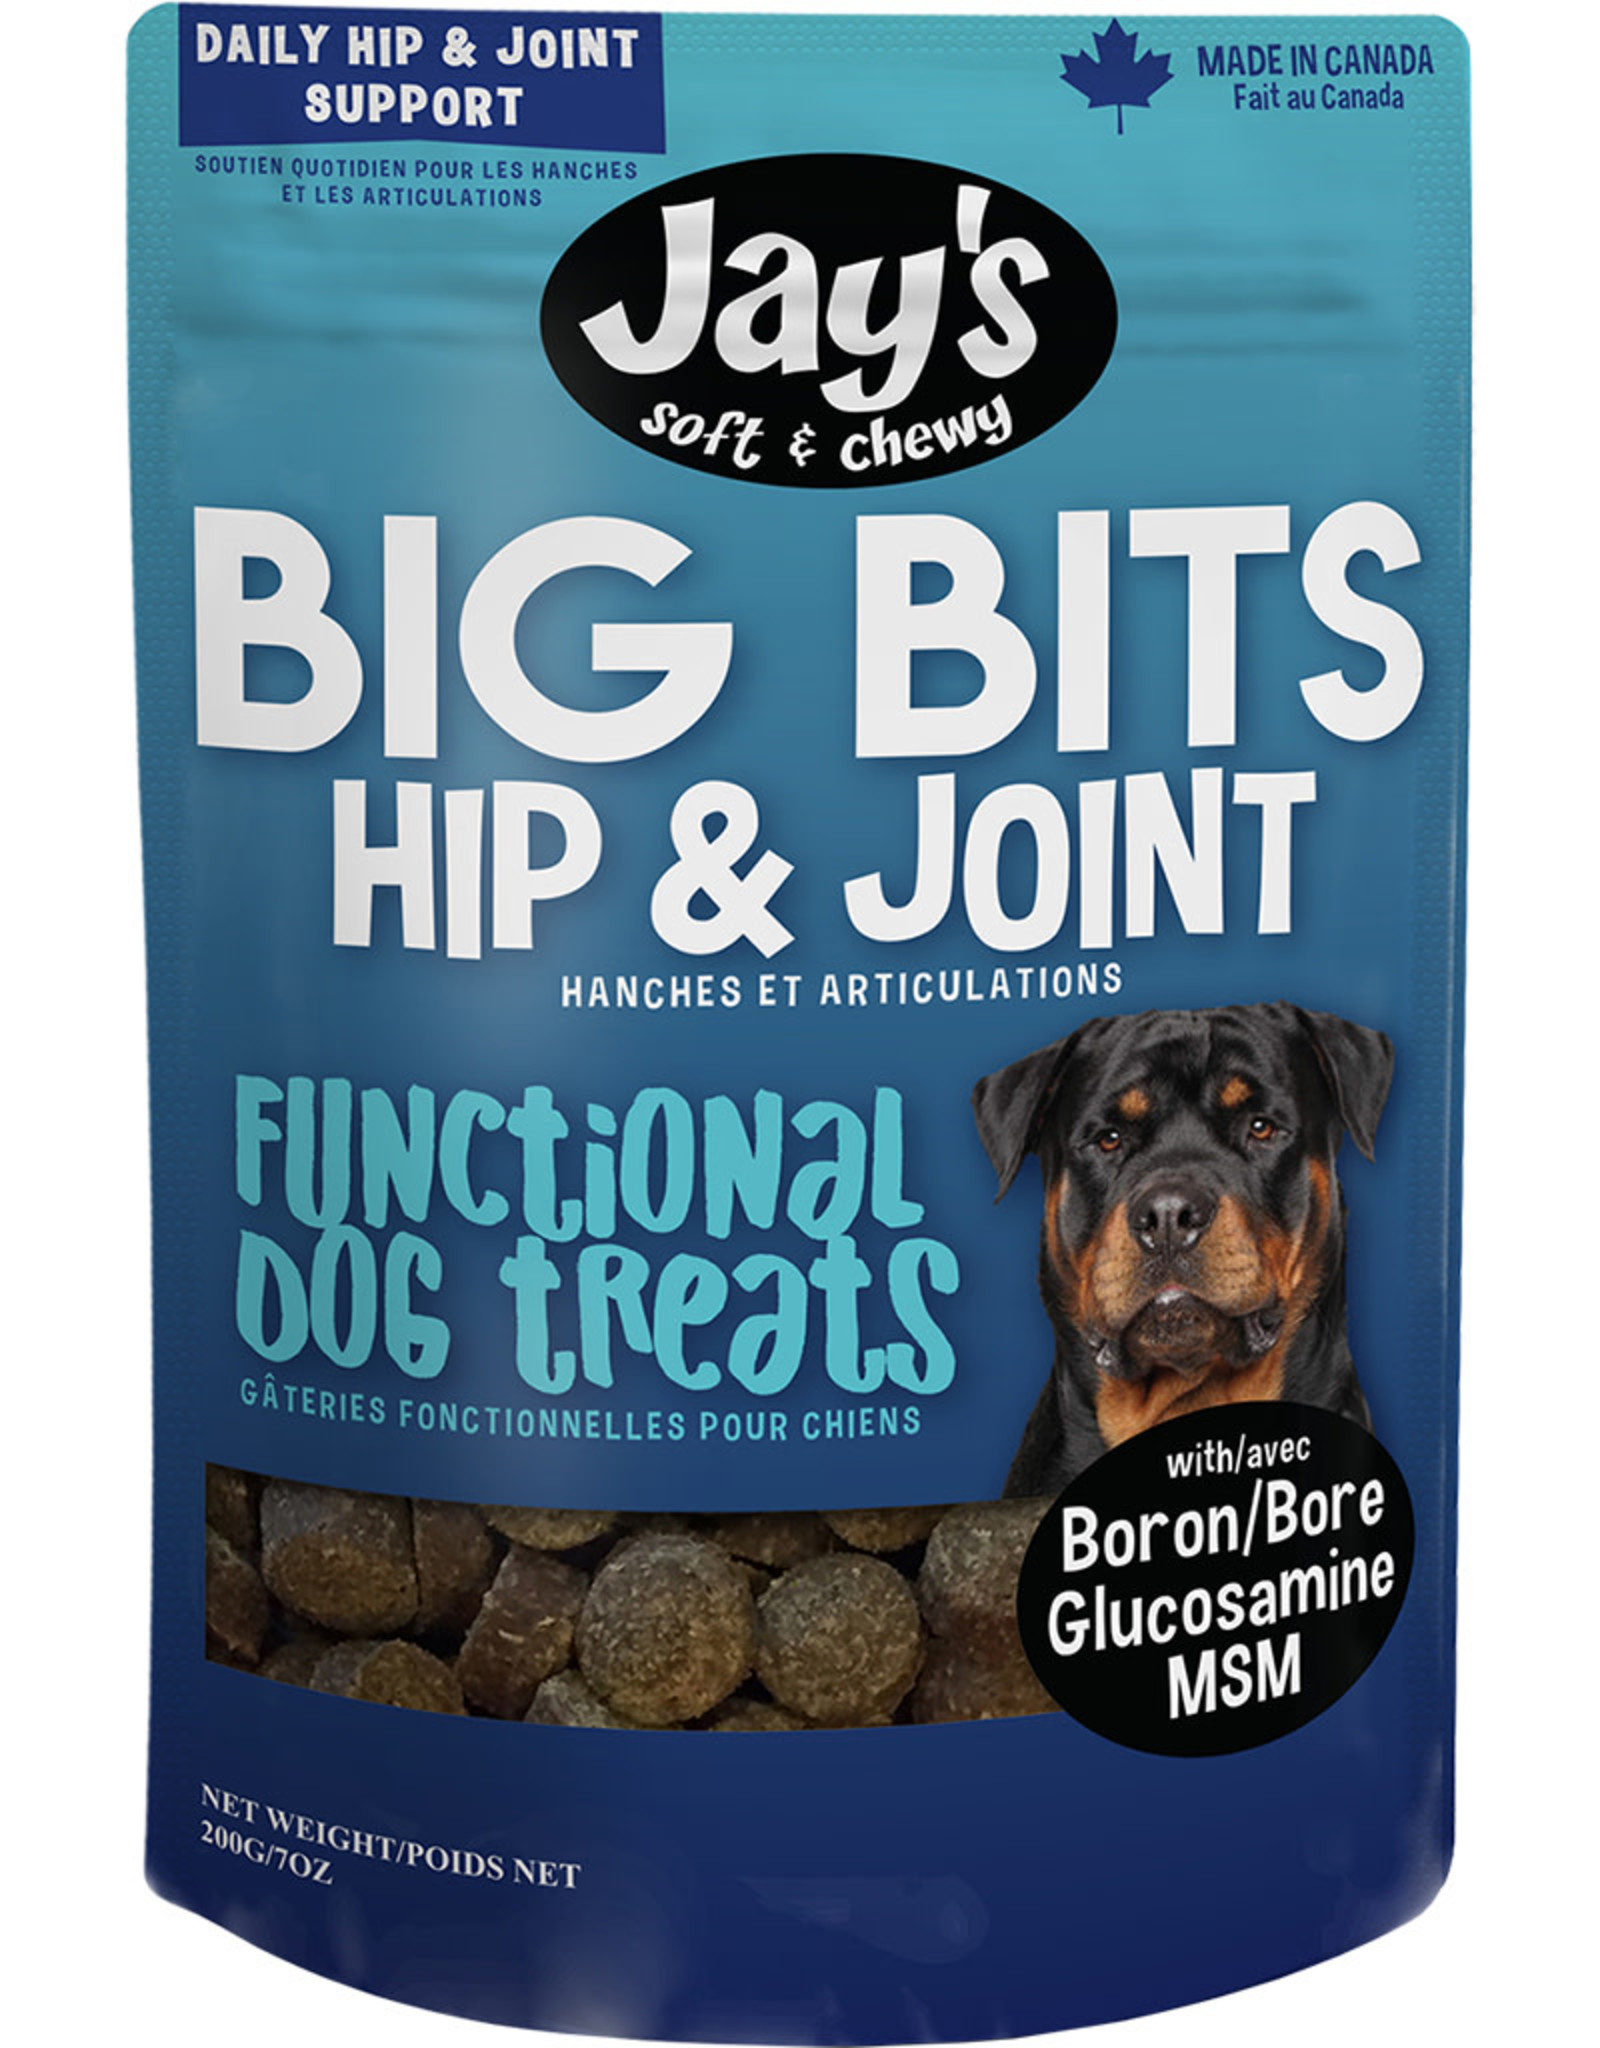 Jay's Jay's Big Bits Hip & Joint 200GM